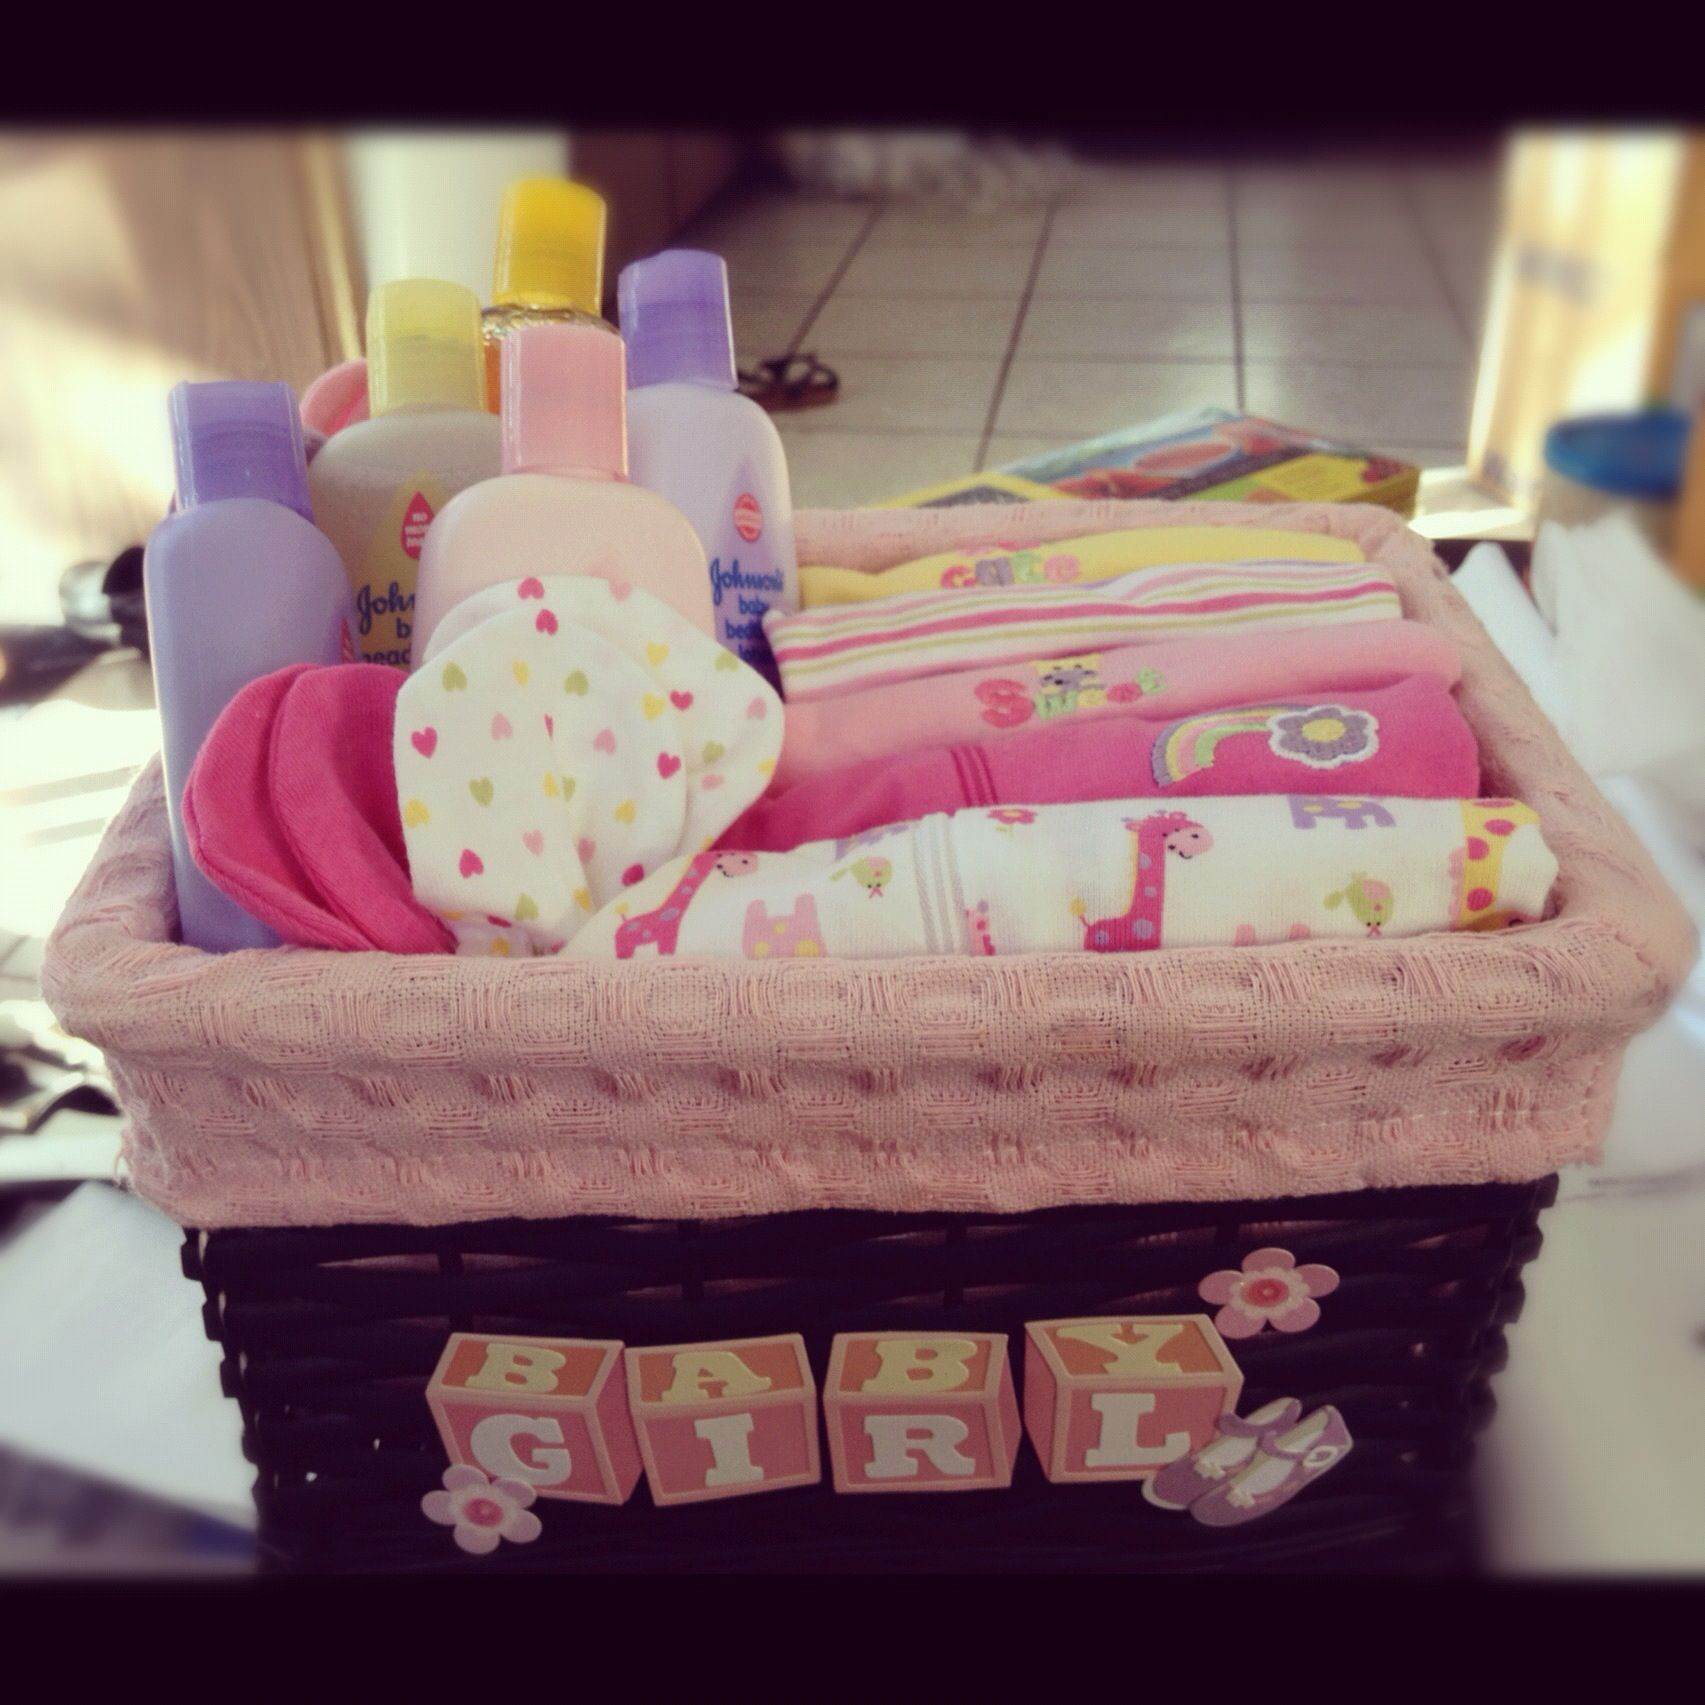 Best ideas about Baby Gift Ideas For Girl . Save or Pin DIY Baby Shower Gift Basket Ideas for Girls Now.